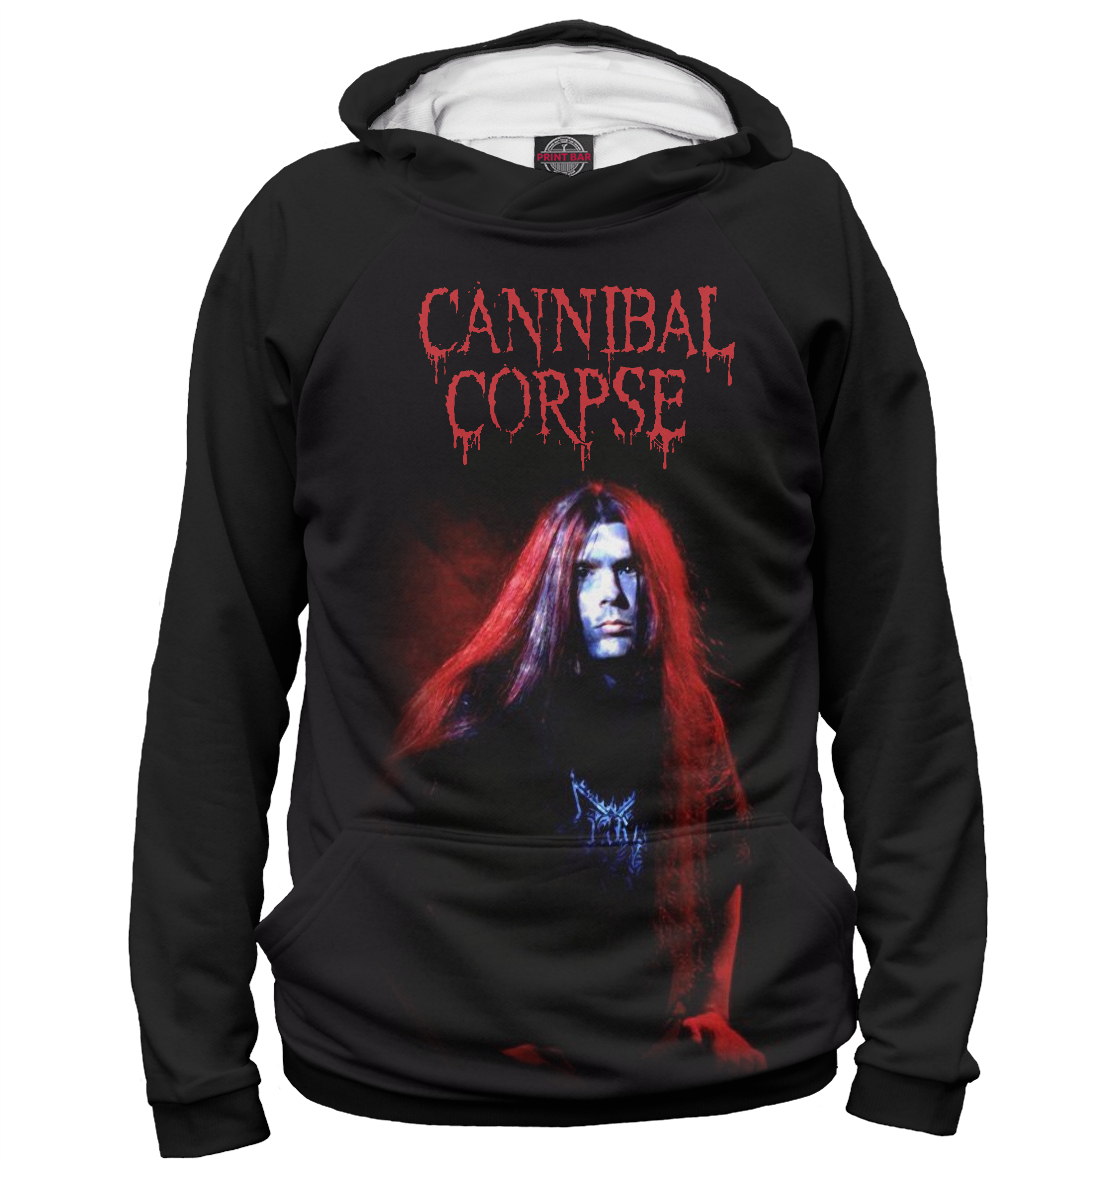 Купить Cannibal Corpse, Printbar, Худи, CCR-512520-hud-1